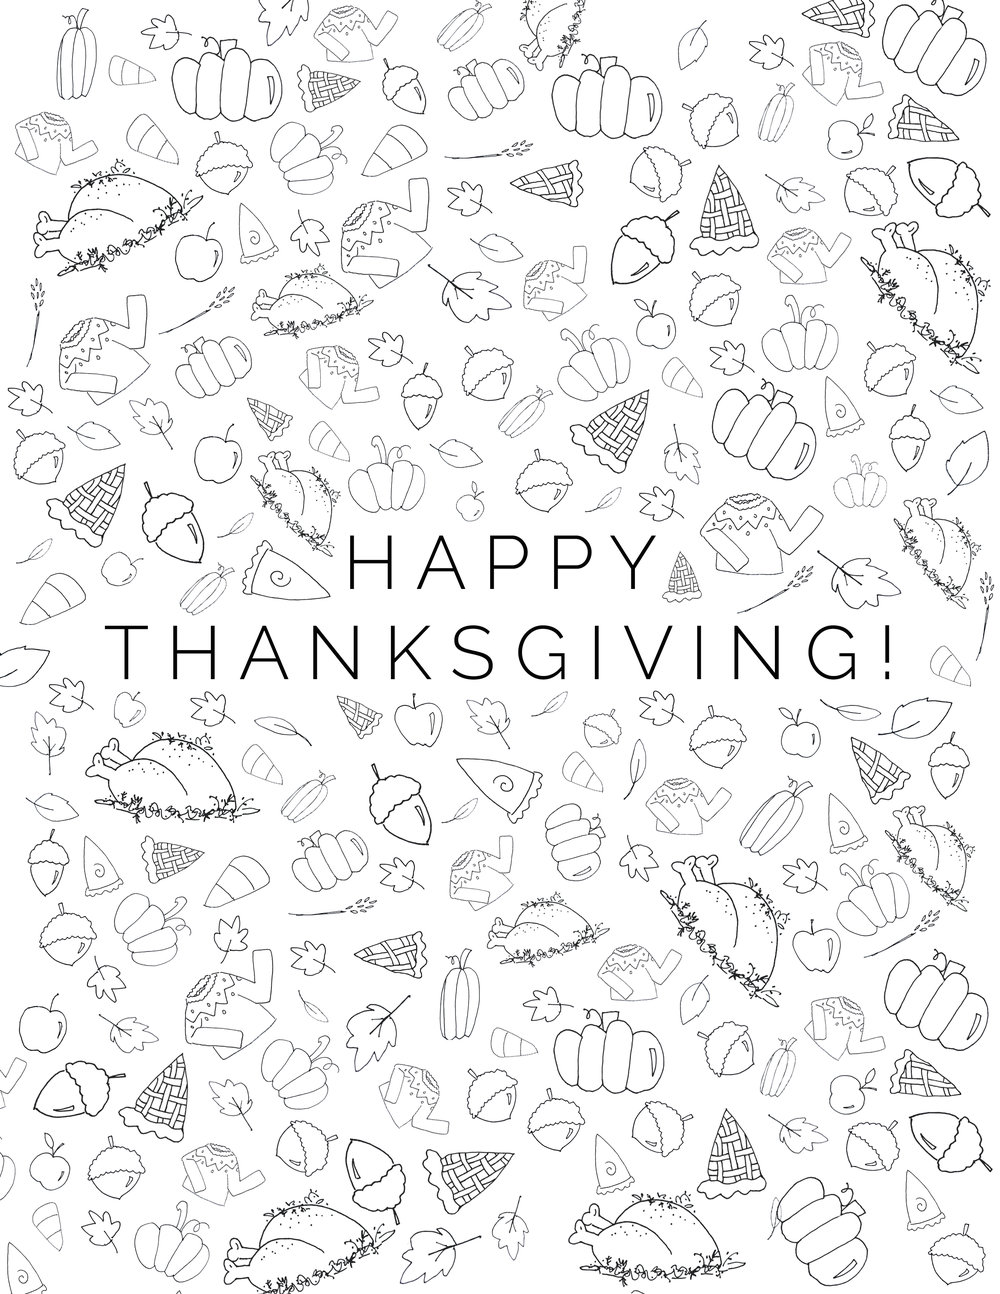 Get this free Thanksgiving coloring page (for children and adults) over at Claire Falco Creative!